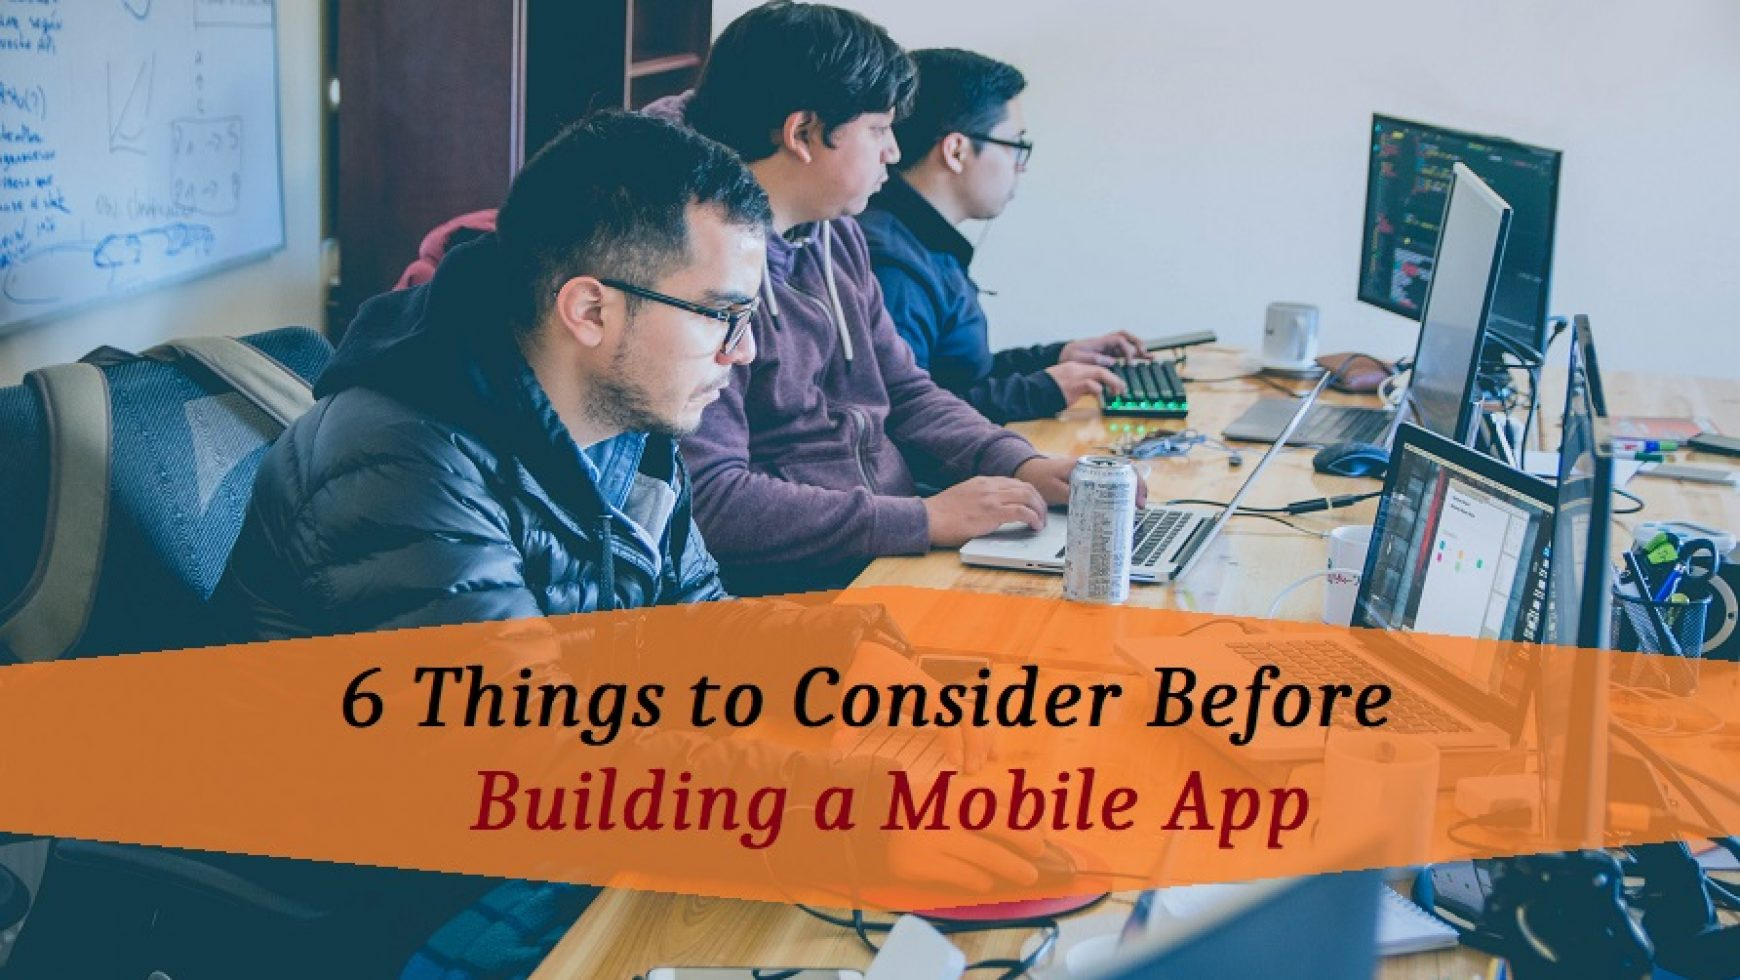 6 Things to Consider Before Building a Mobile App